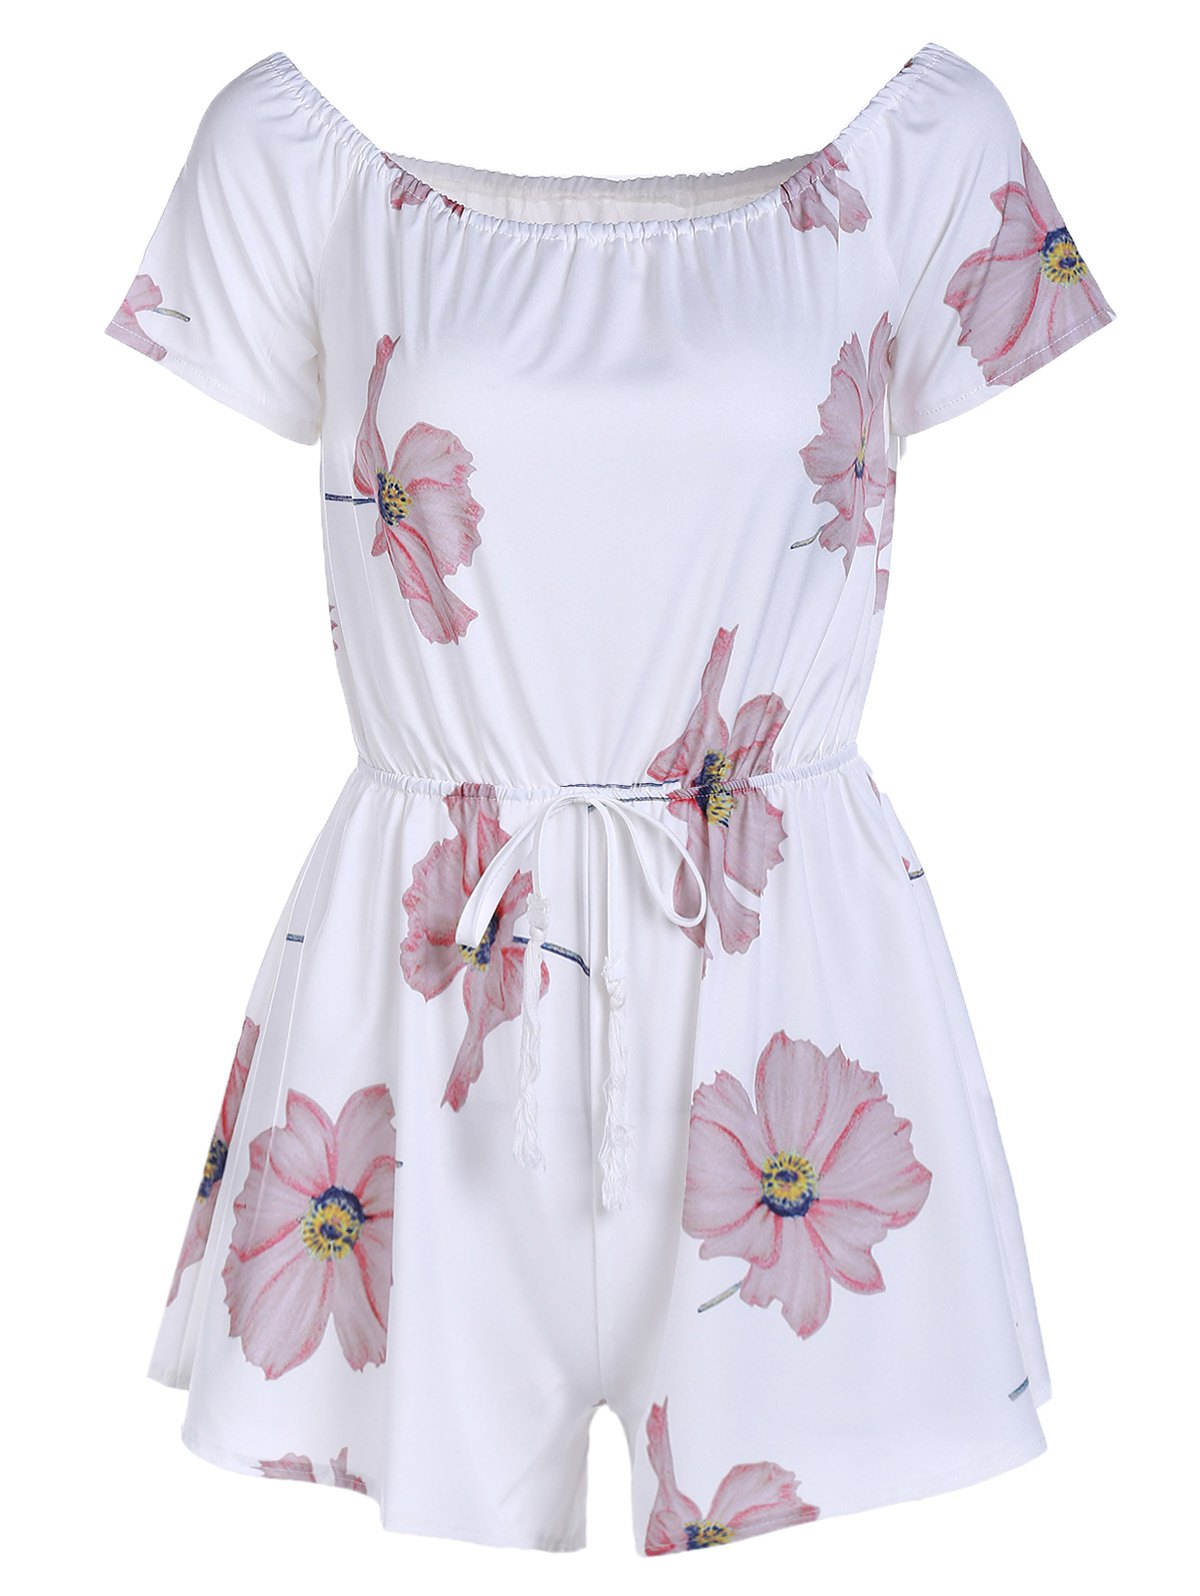 Cute Floral Short Sleeve Off-The-Shoulder Women's Romper - WHITE L